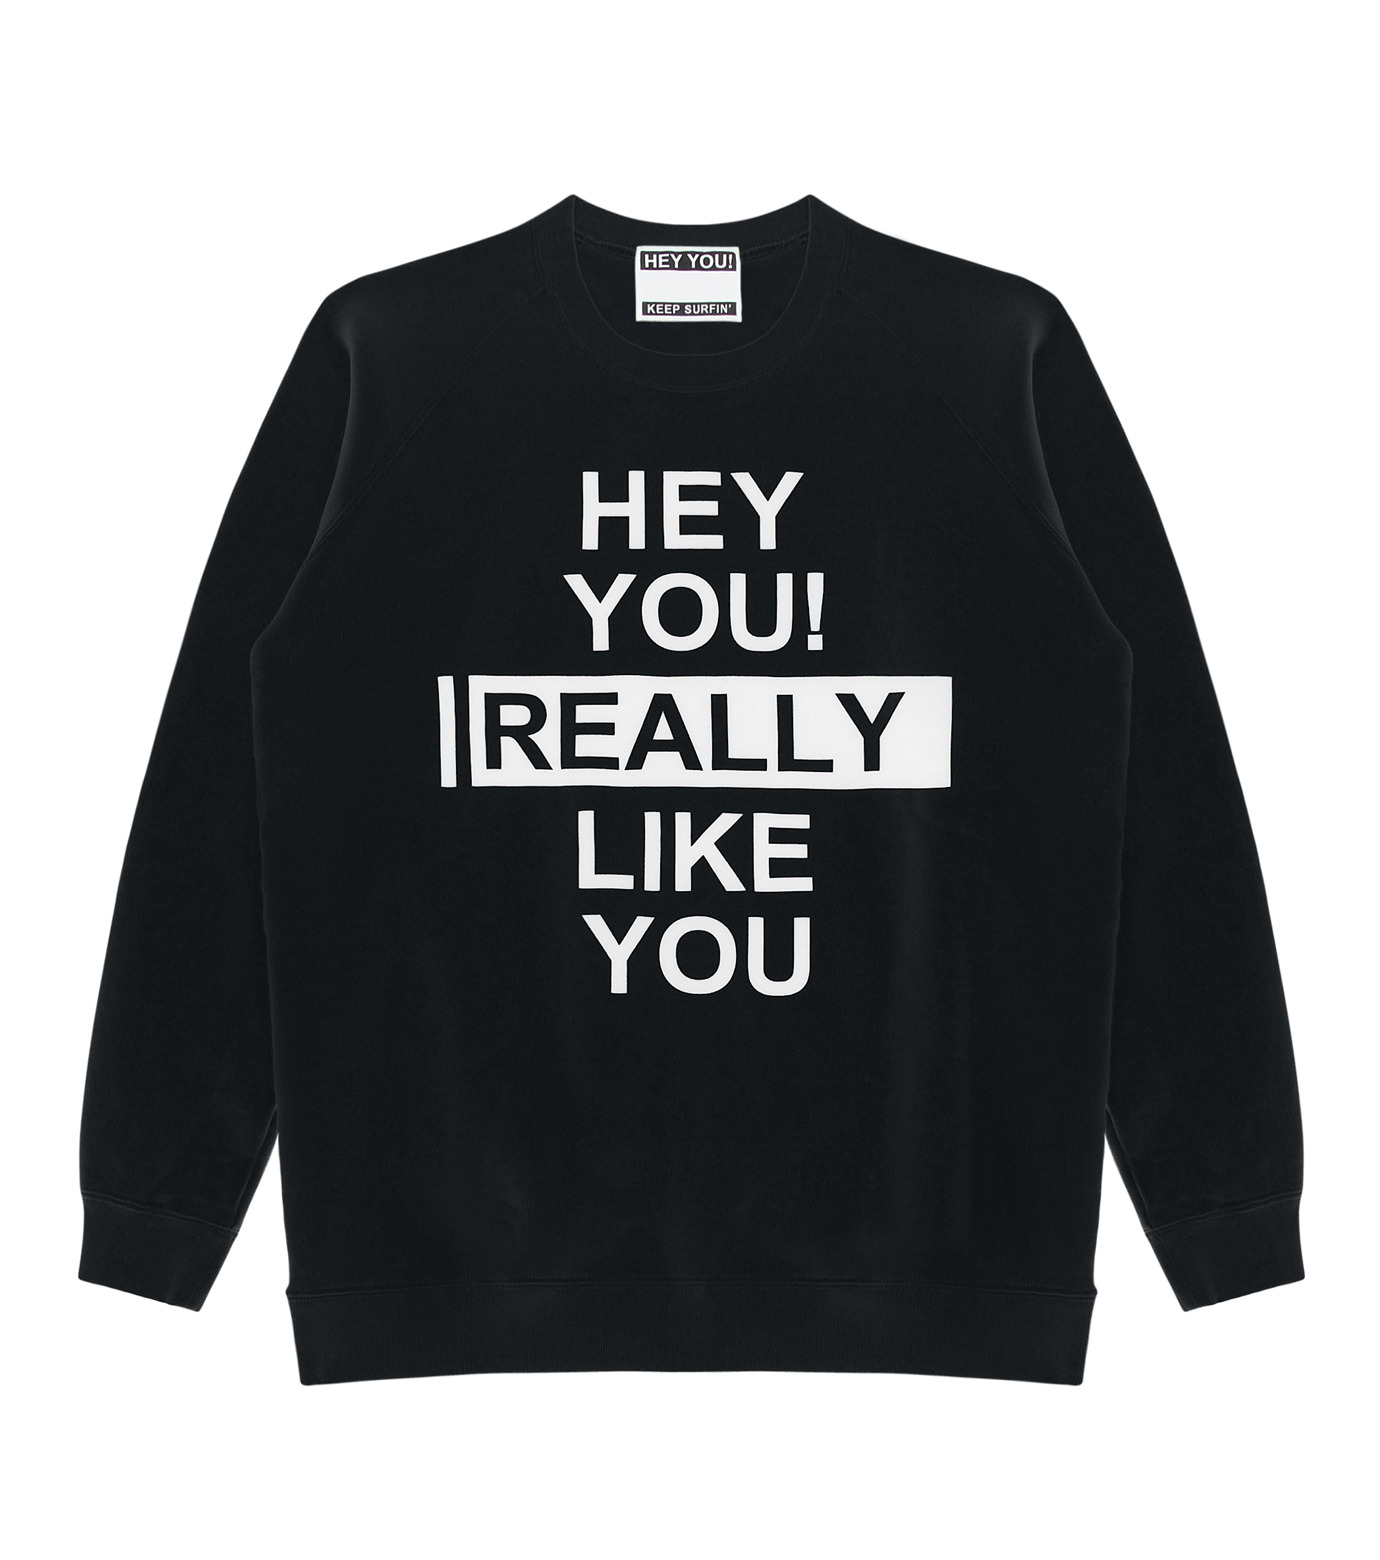 HEY YOU !(ヘイユウ)のHEY YOU LIKE YOU-BLACK(カットソー/cut and sewn)-18S92003-13 拡大詳細画像1